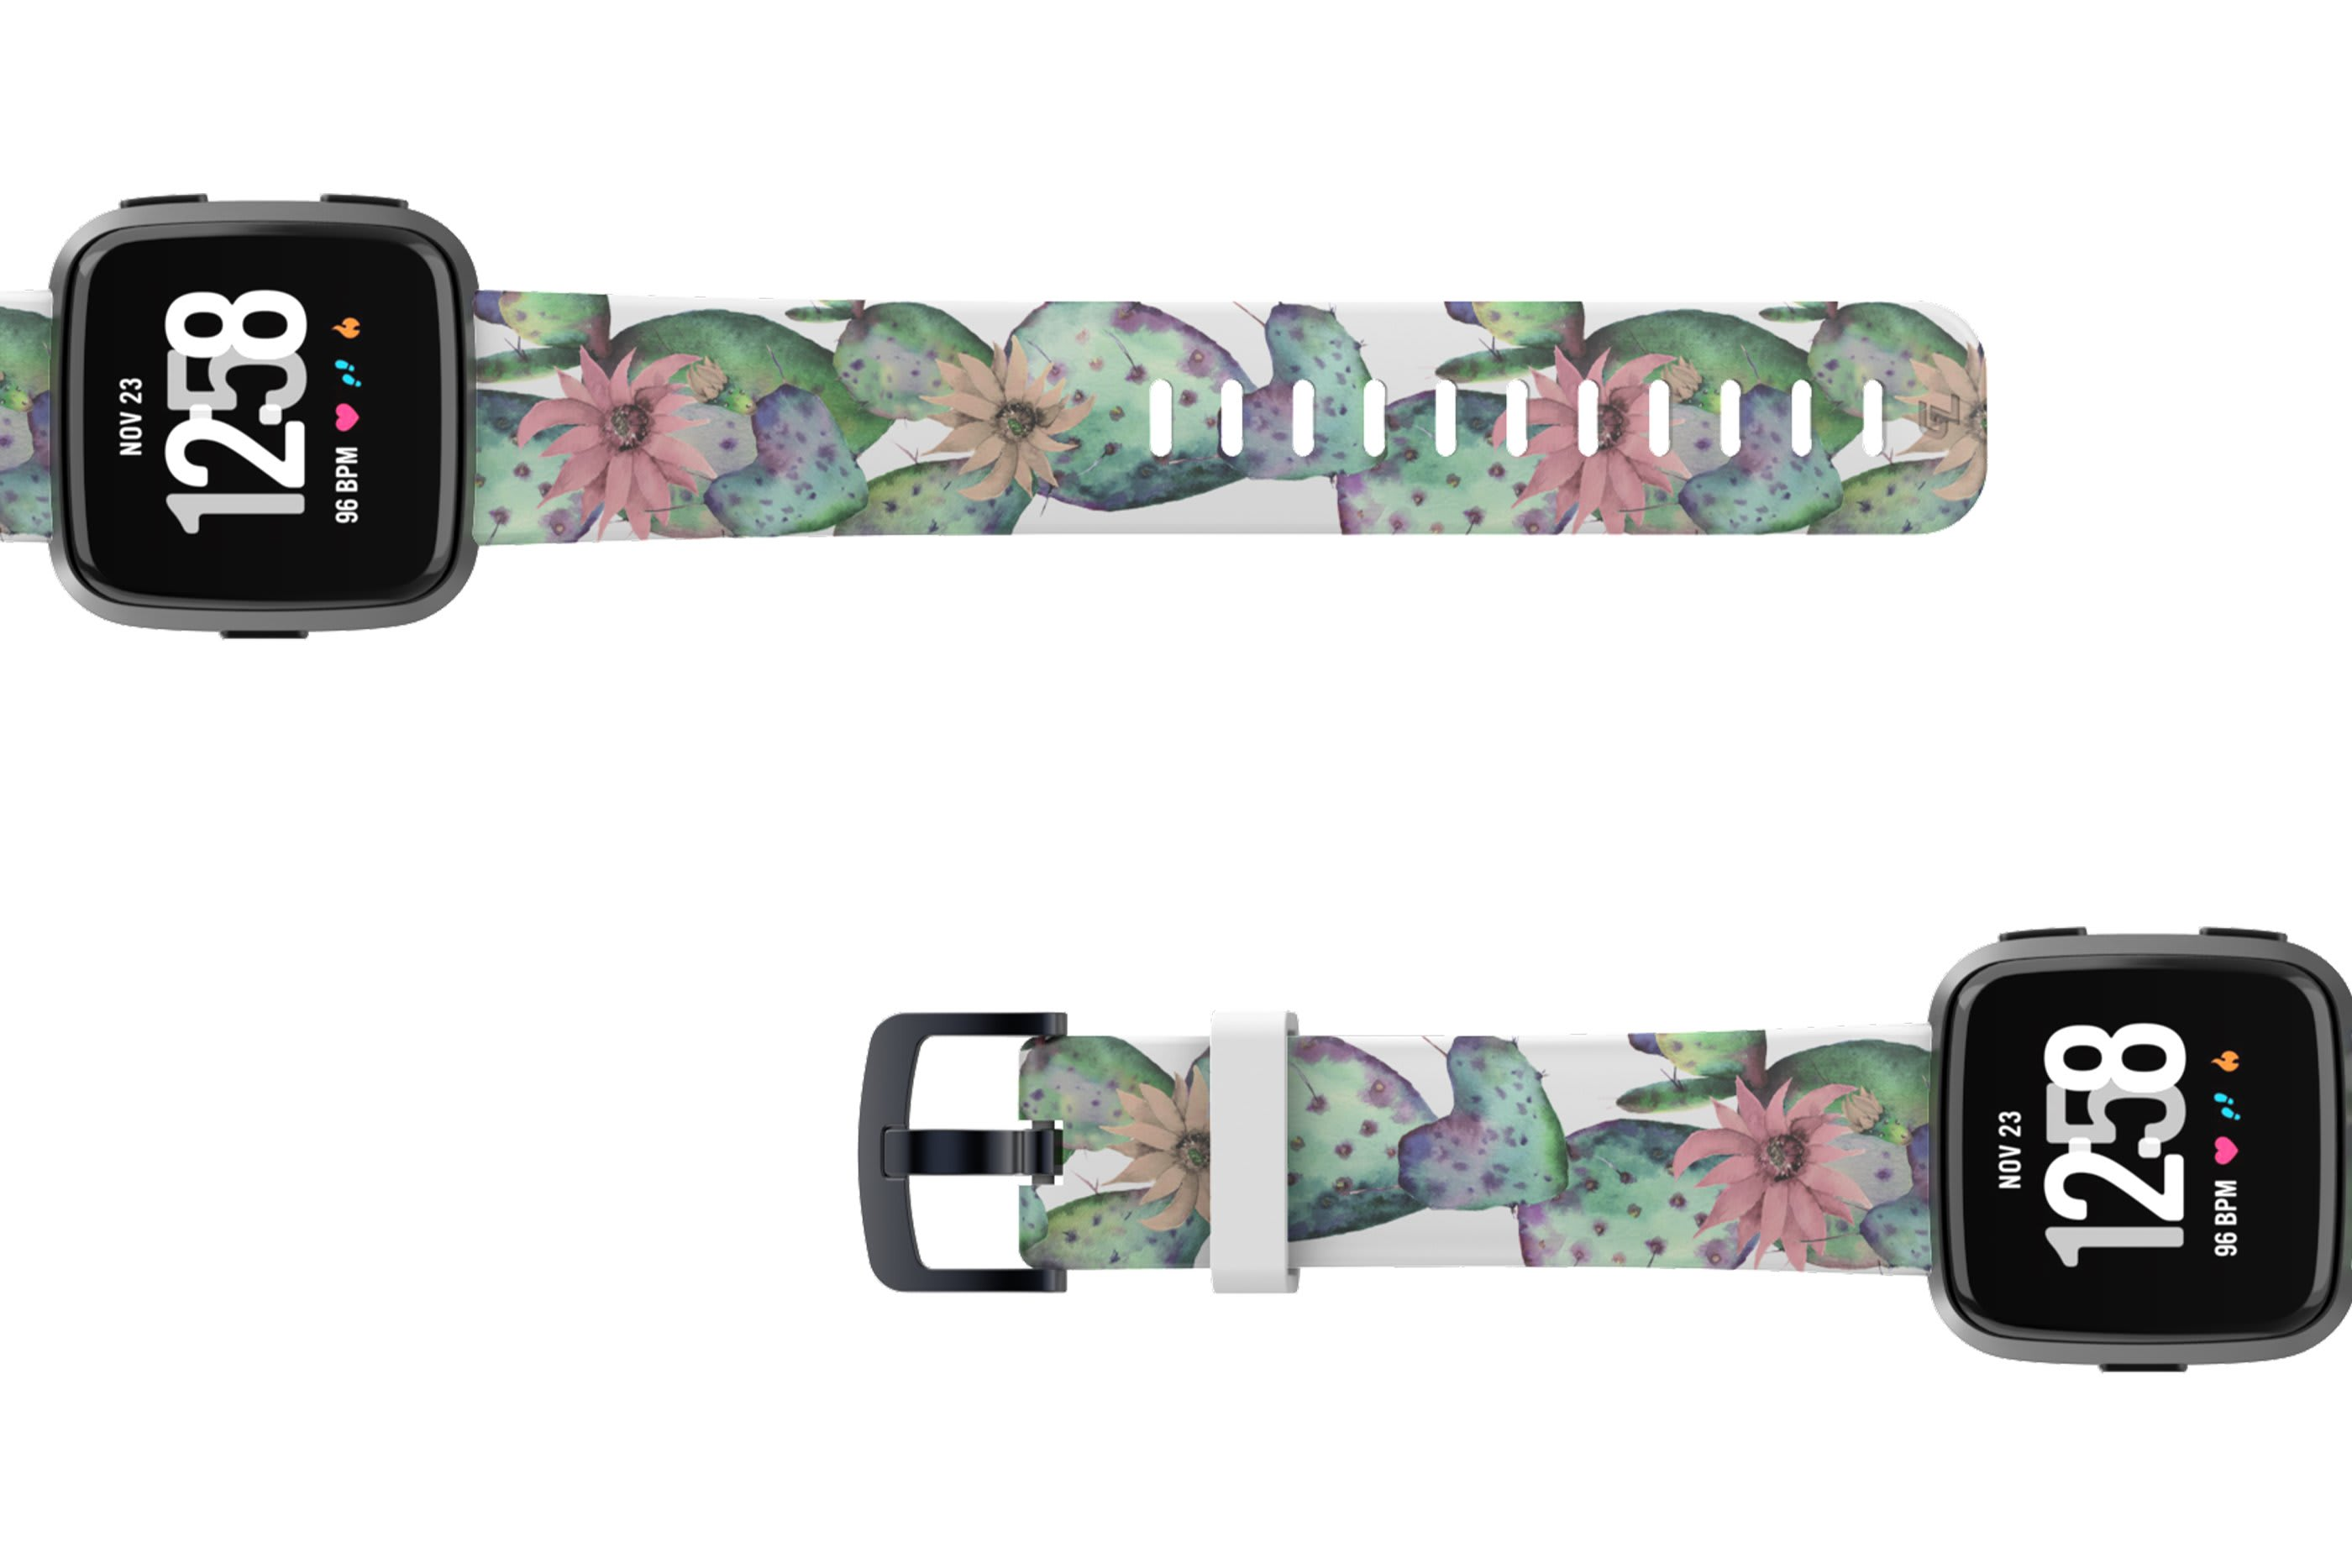 Cactus Bloom Fitbit Versa watch band with rose gold hardware viewed top down